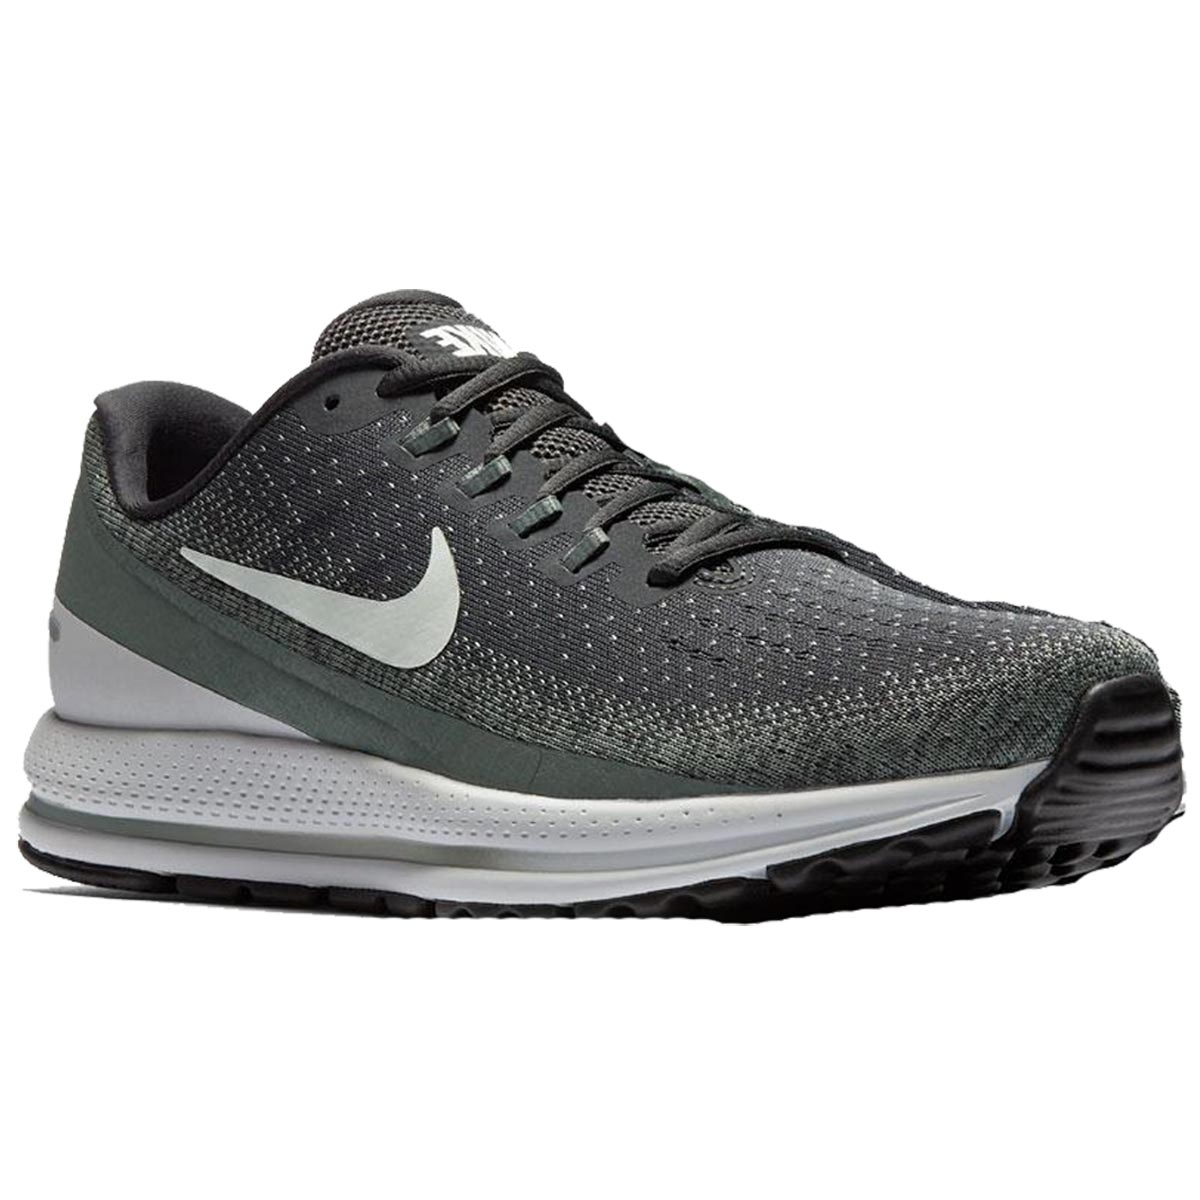 watch 95d7b 658c4 Nike Air Zoom Vomero 13 Running Shoes (Anthra/Grey)